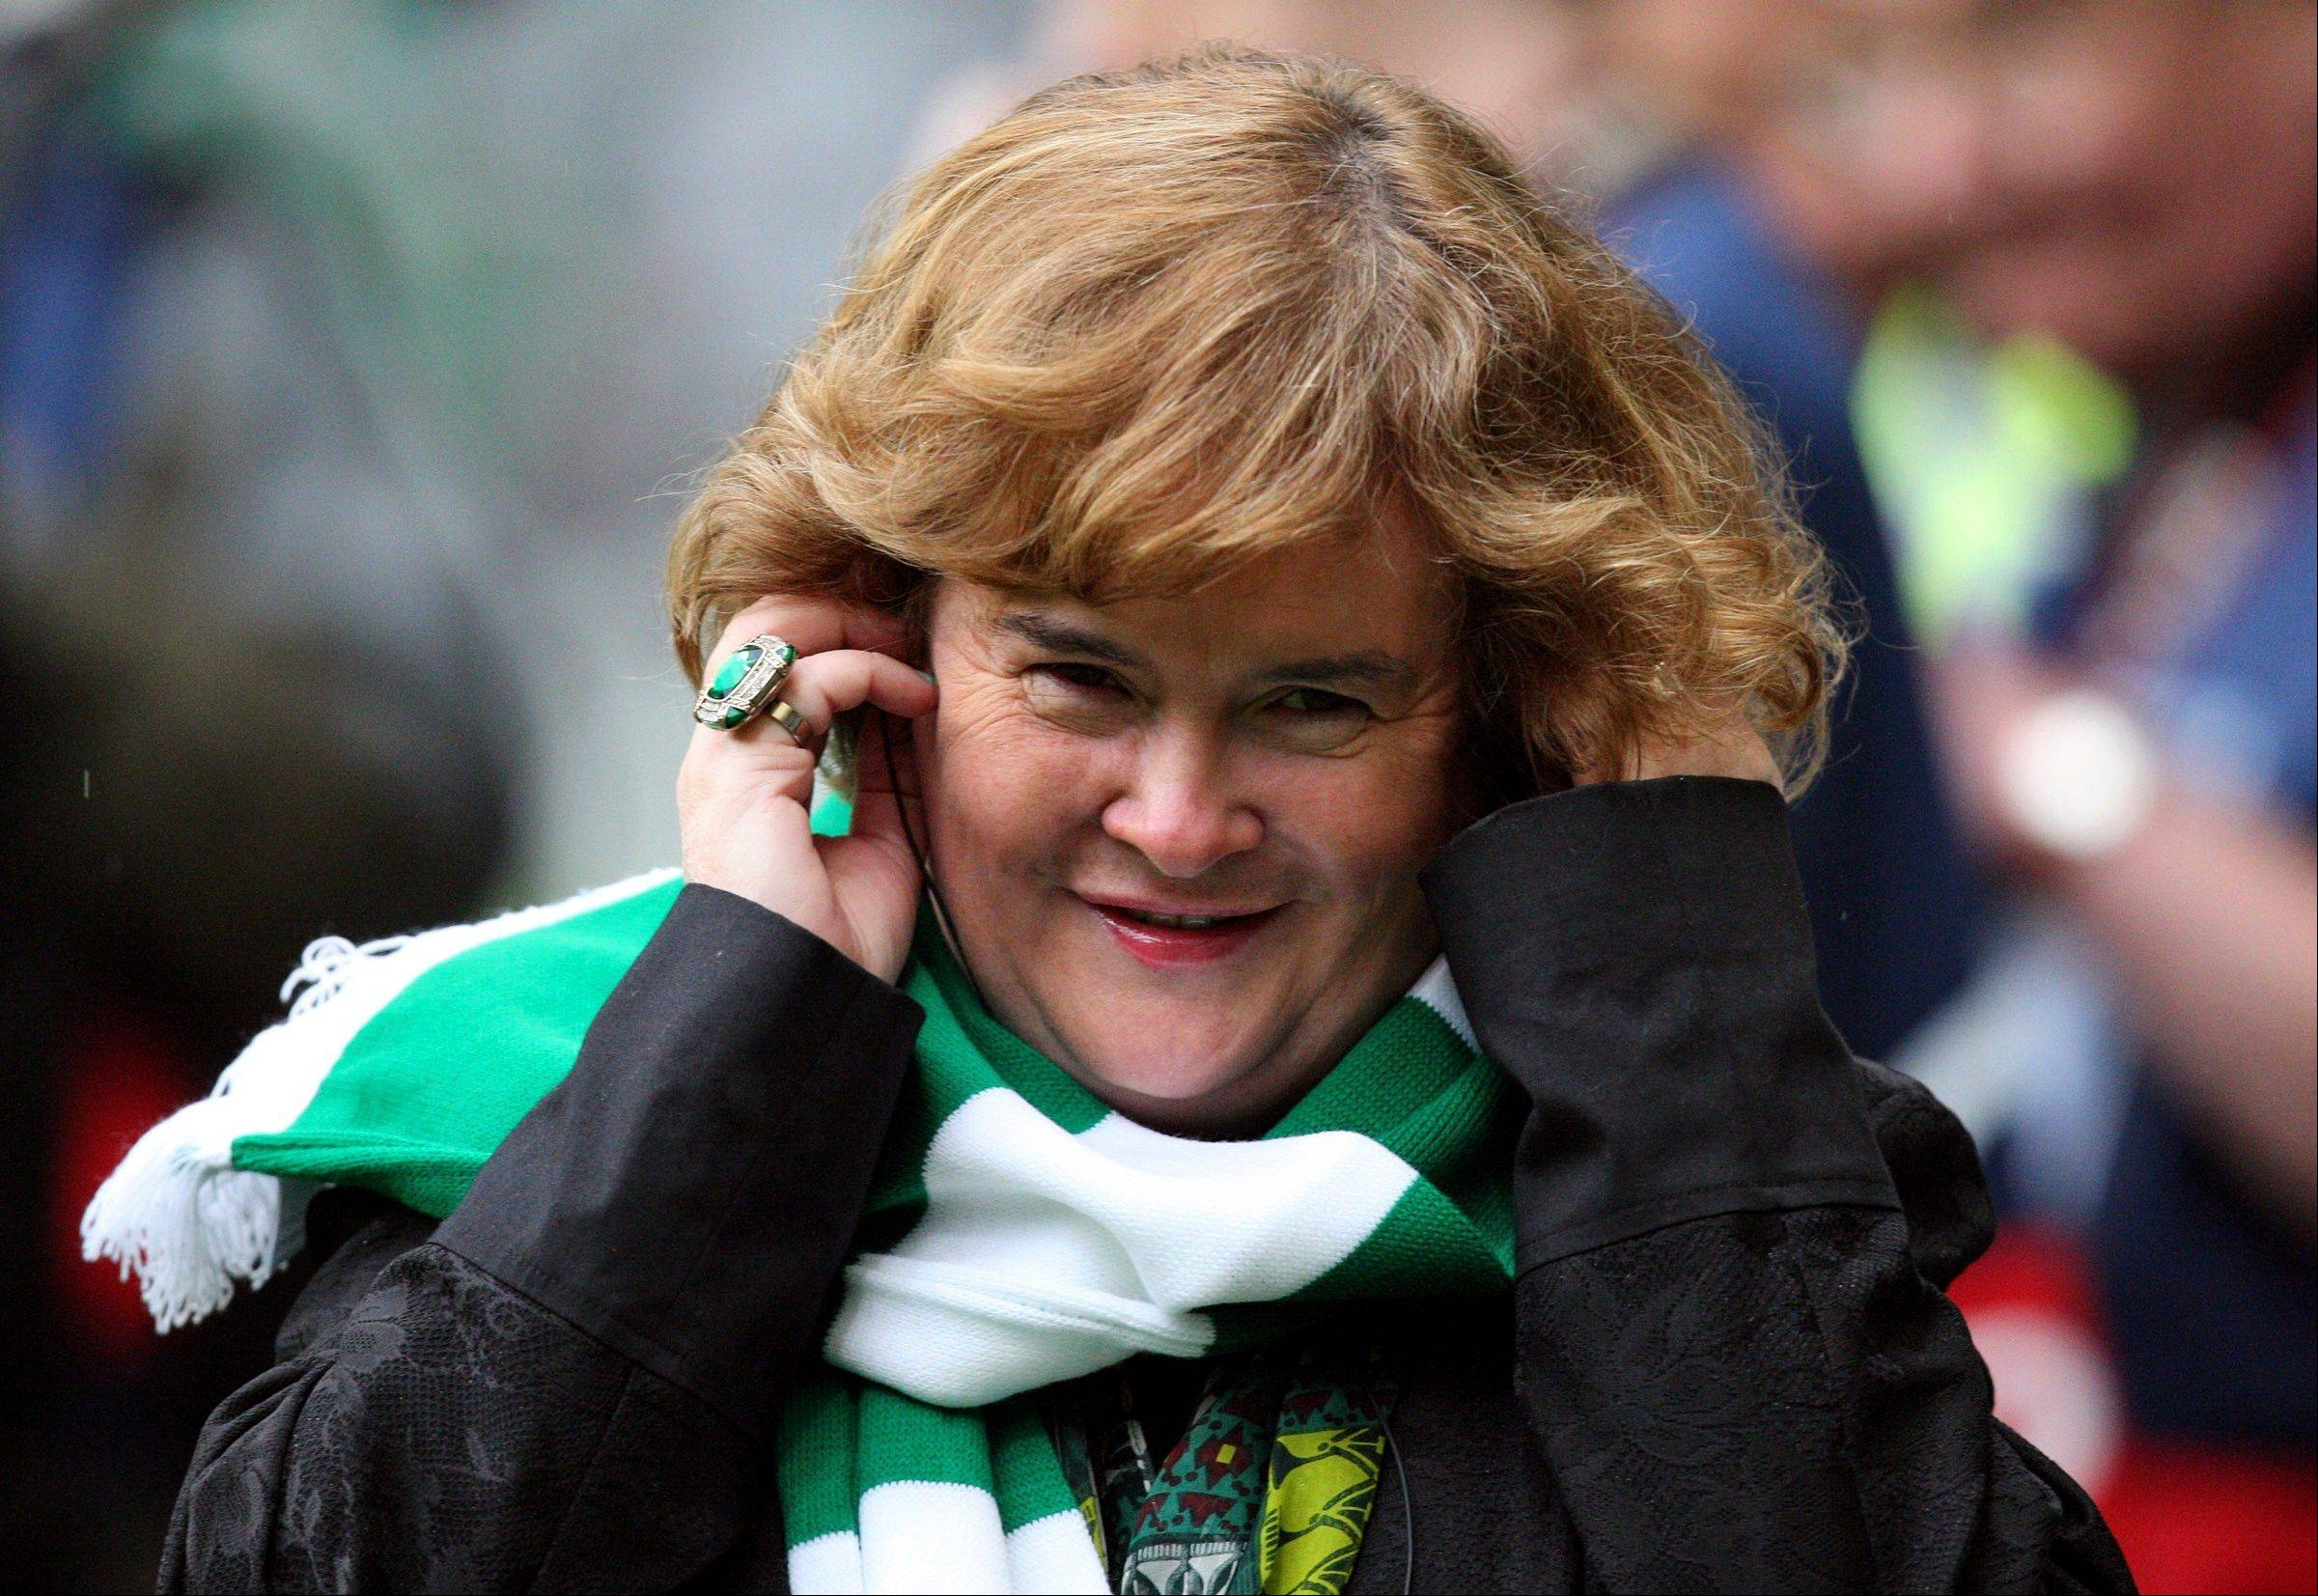 Susan Boyle told the Observer newspaper in an interview published Sunday that she has been diagnosed with Asperger�s syndrome, a form of autism, after seeing a specialist a year ago.